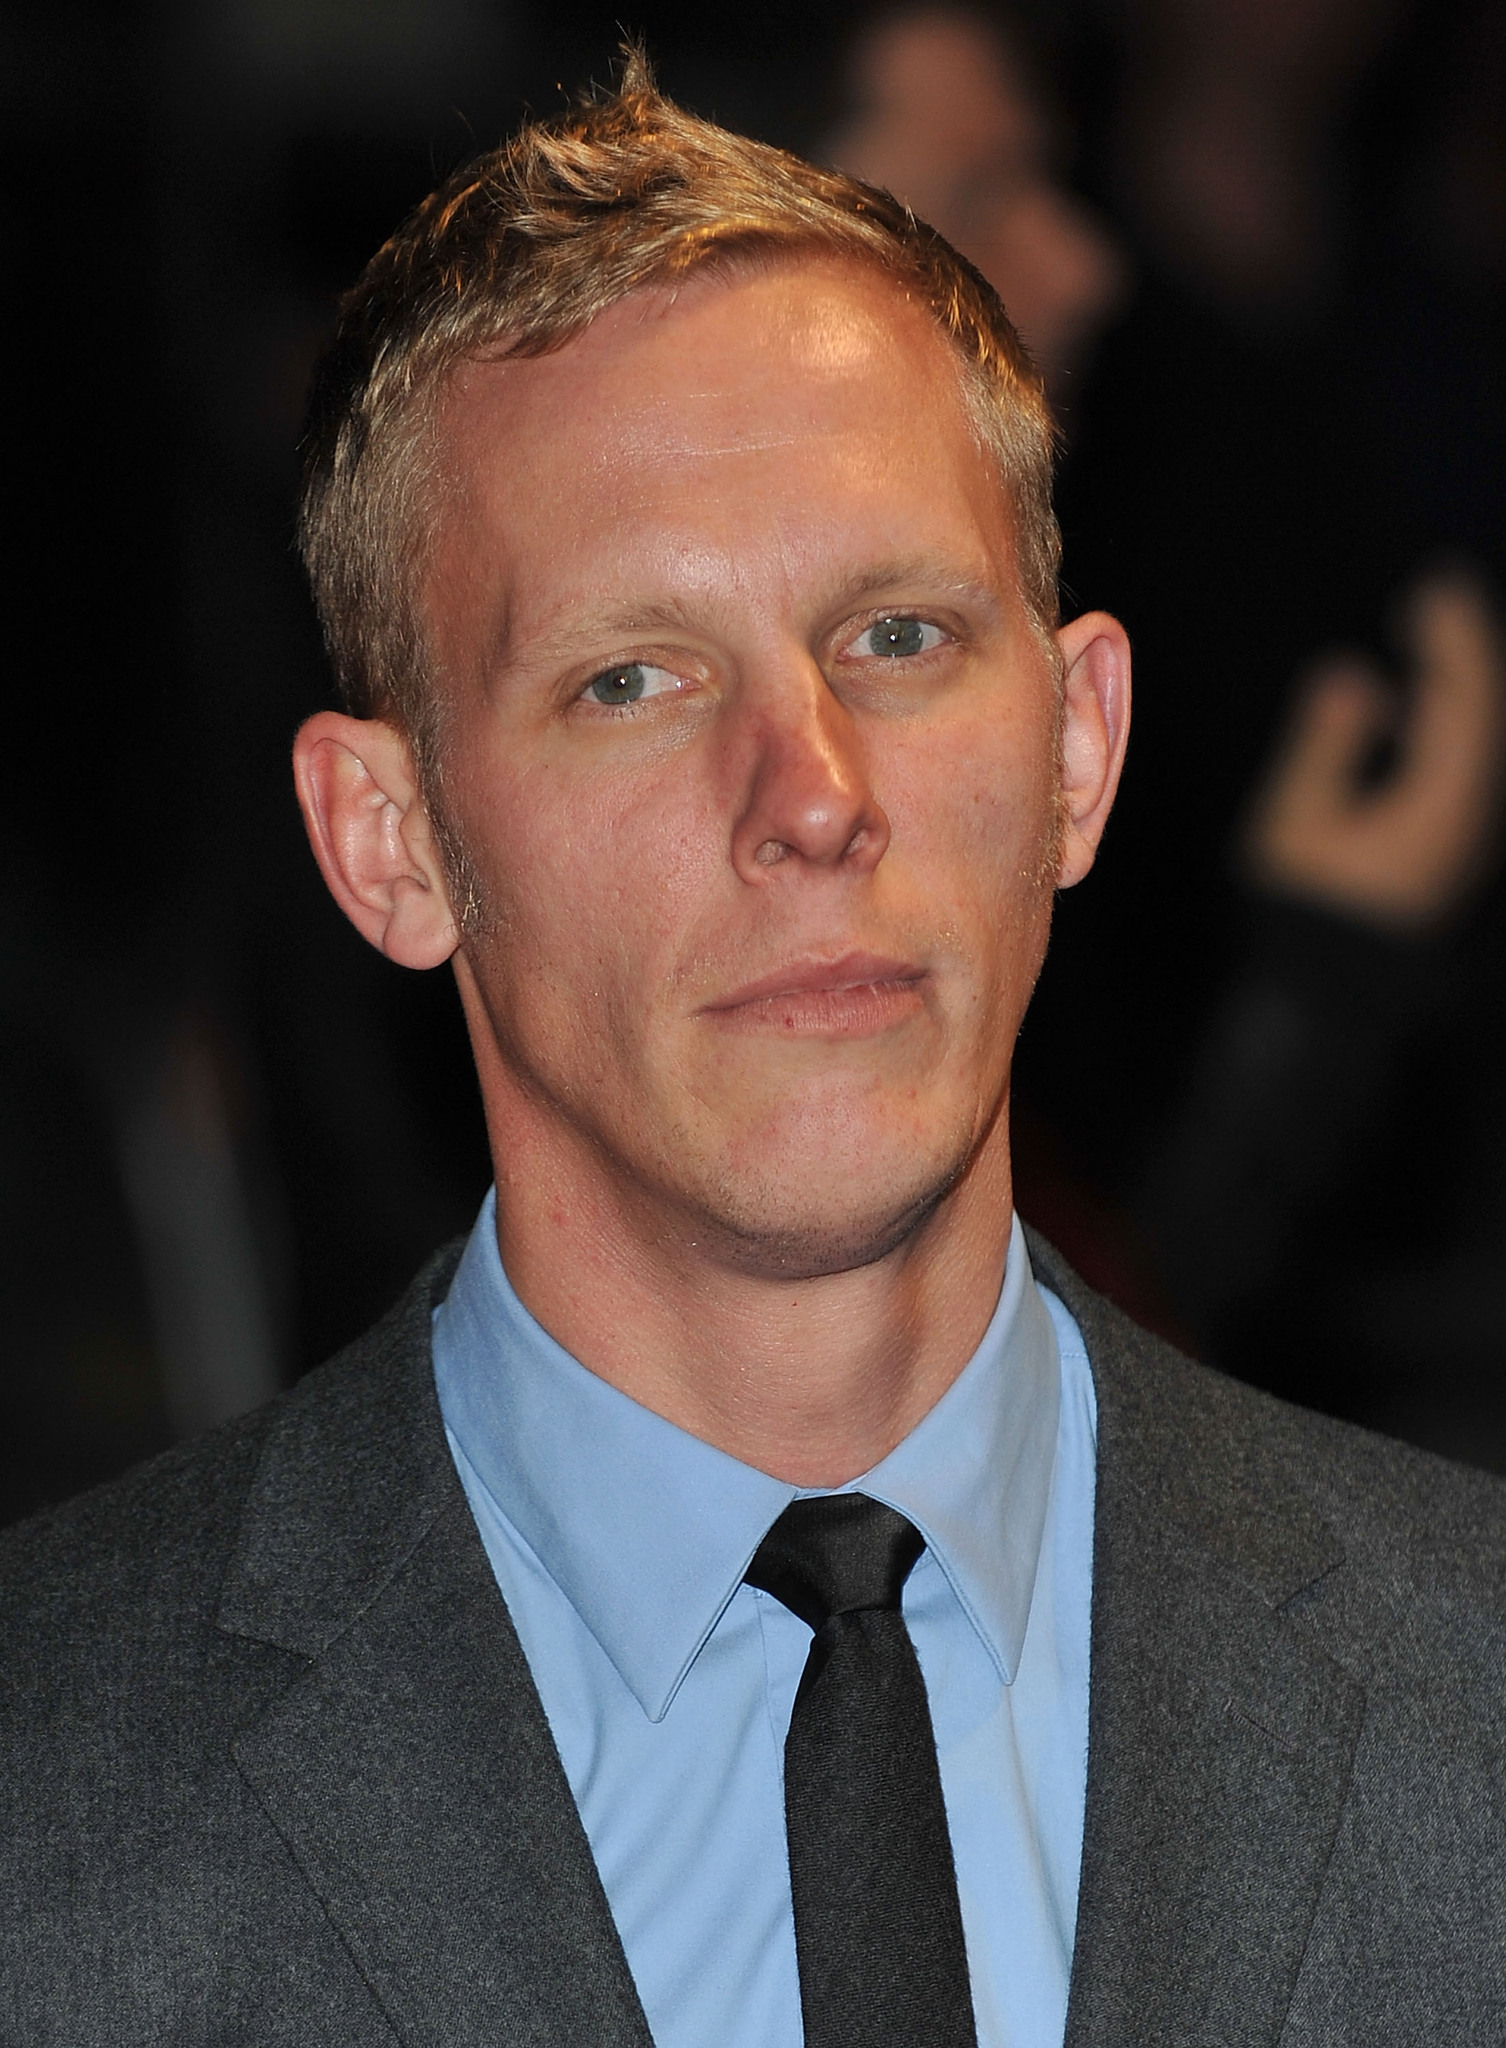 Laurence Fox (born 1978)